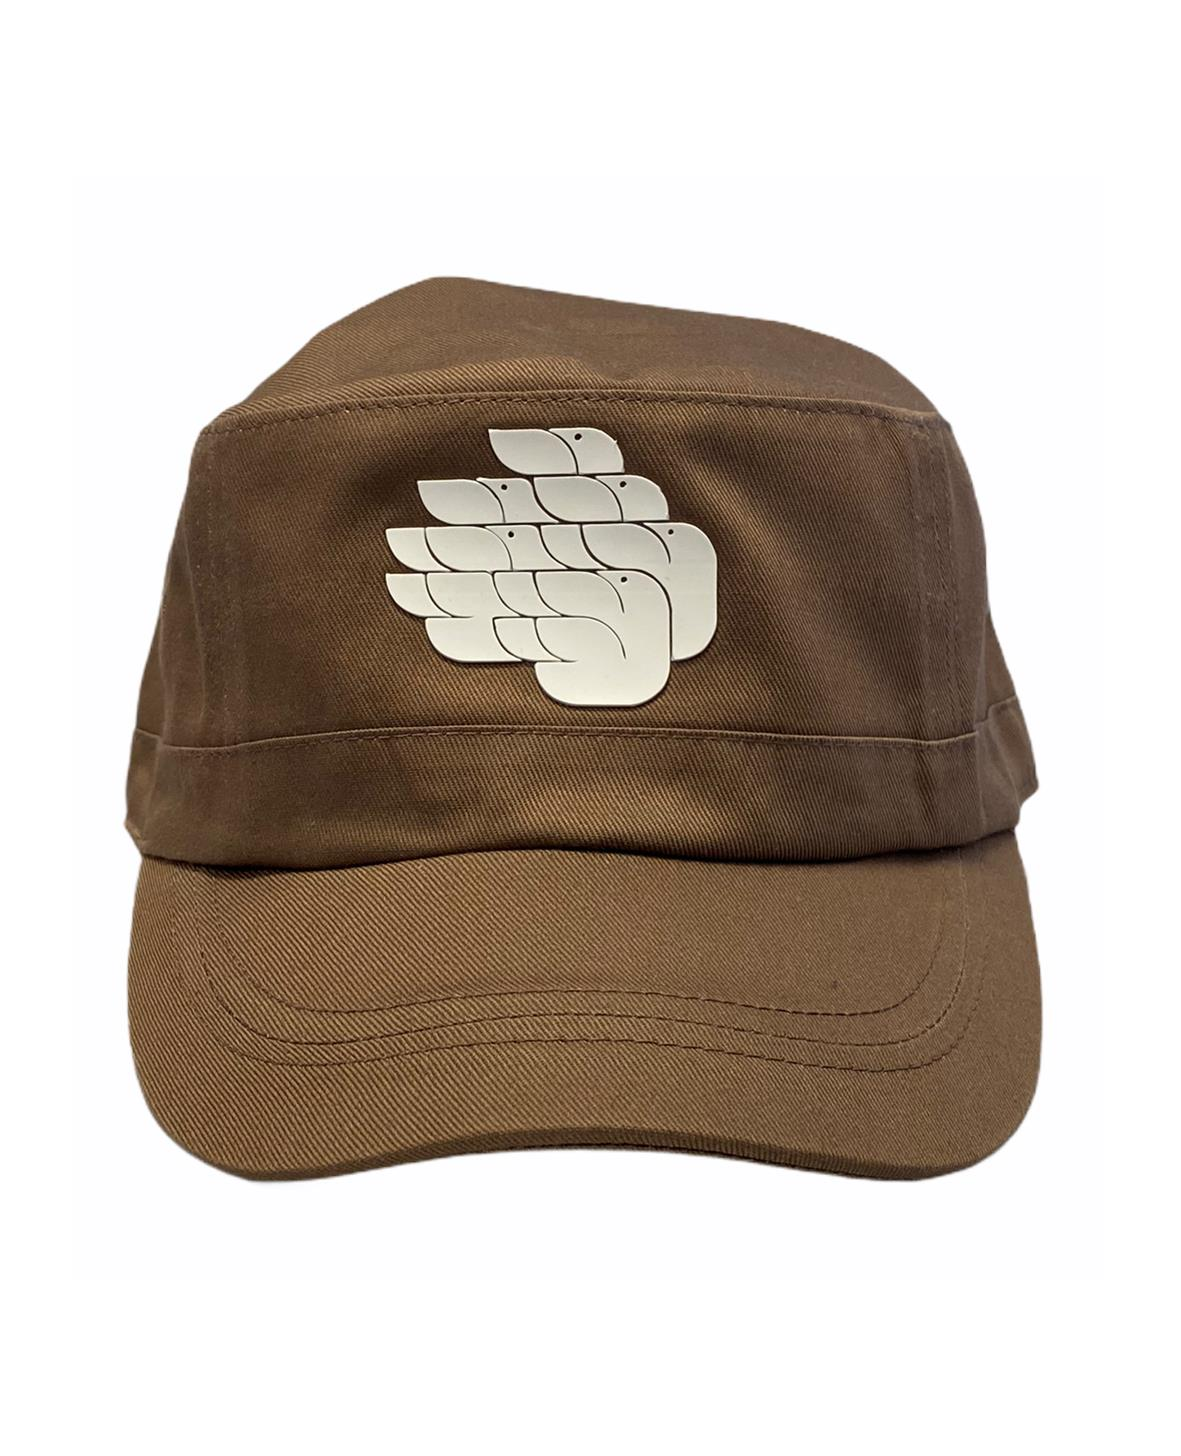 DOVES MILITARY CAP SWEDISH DOVES CHESTNUT